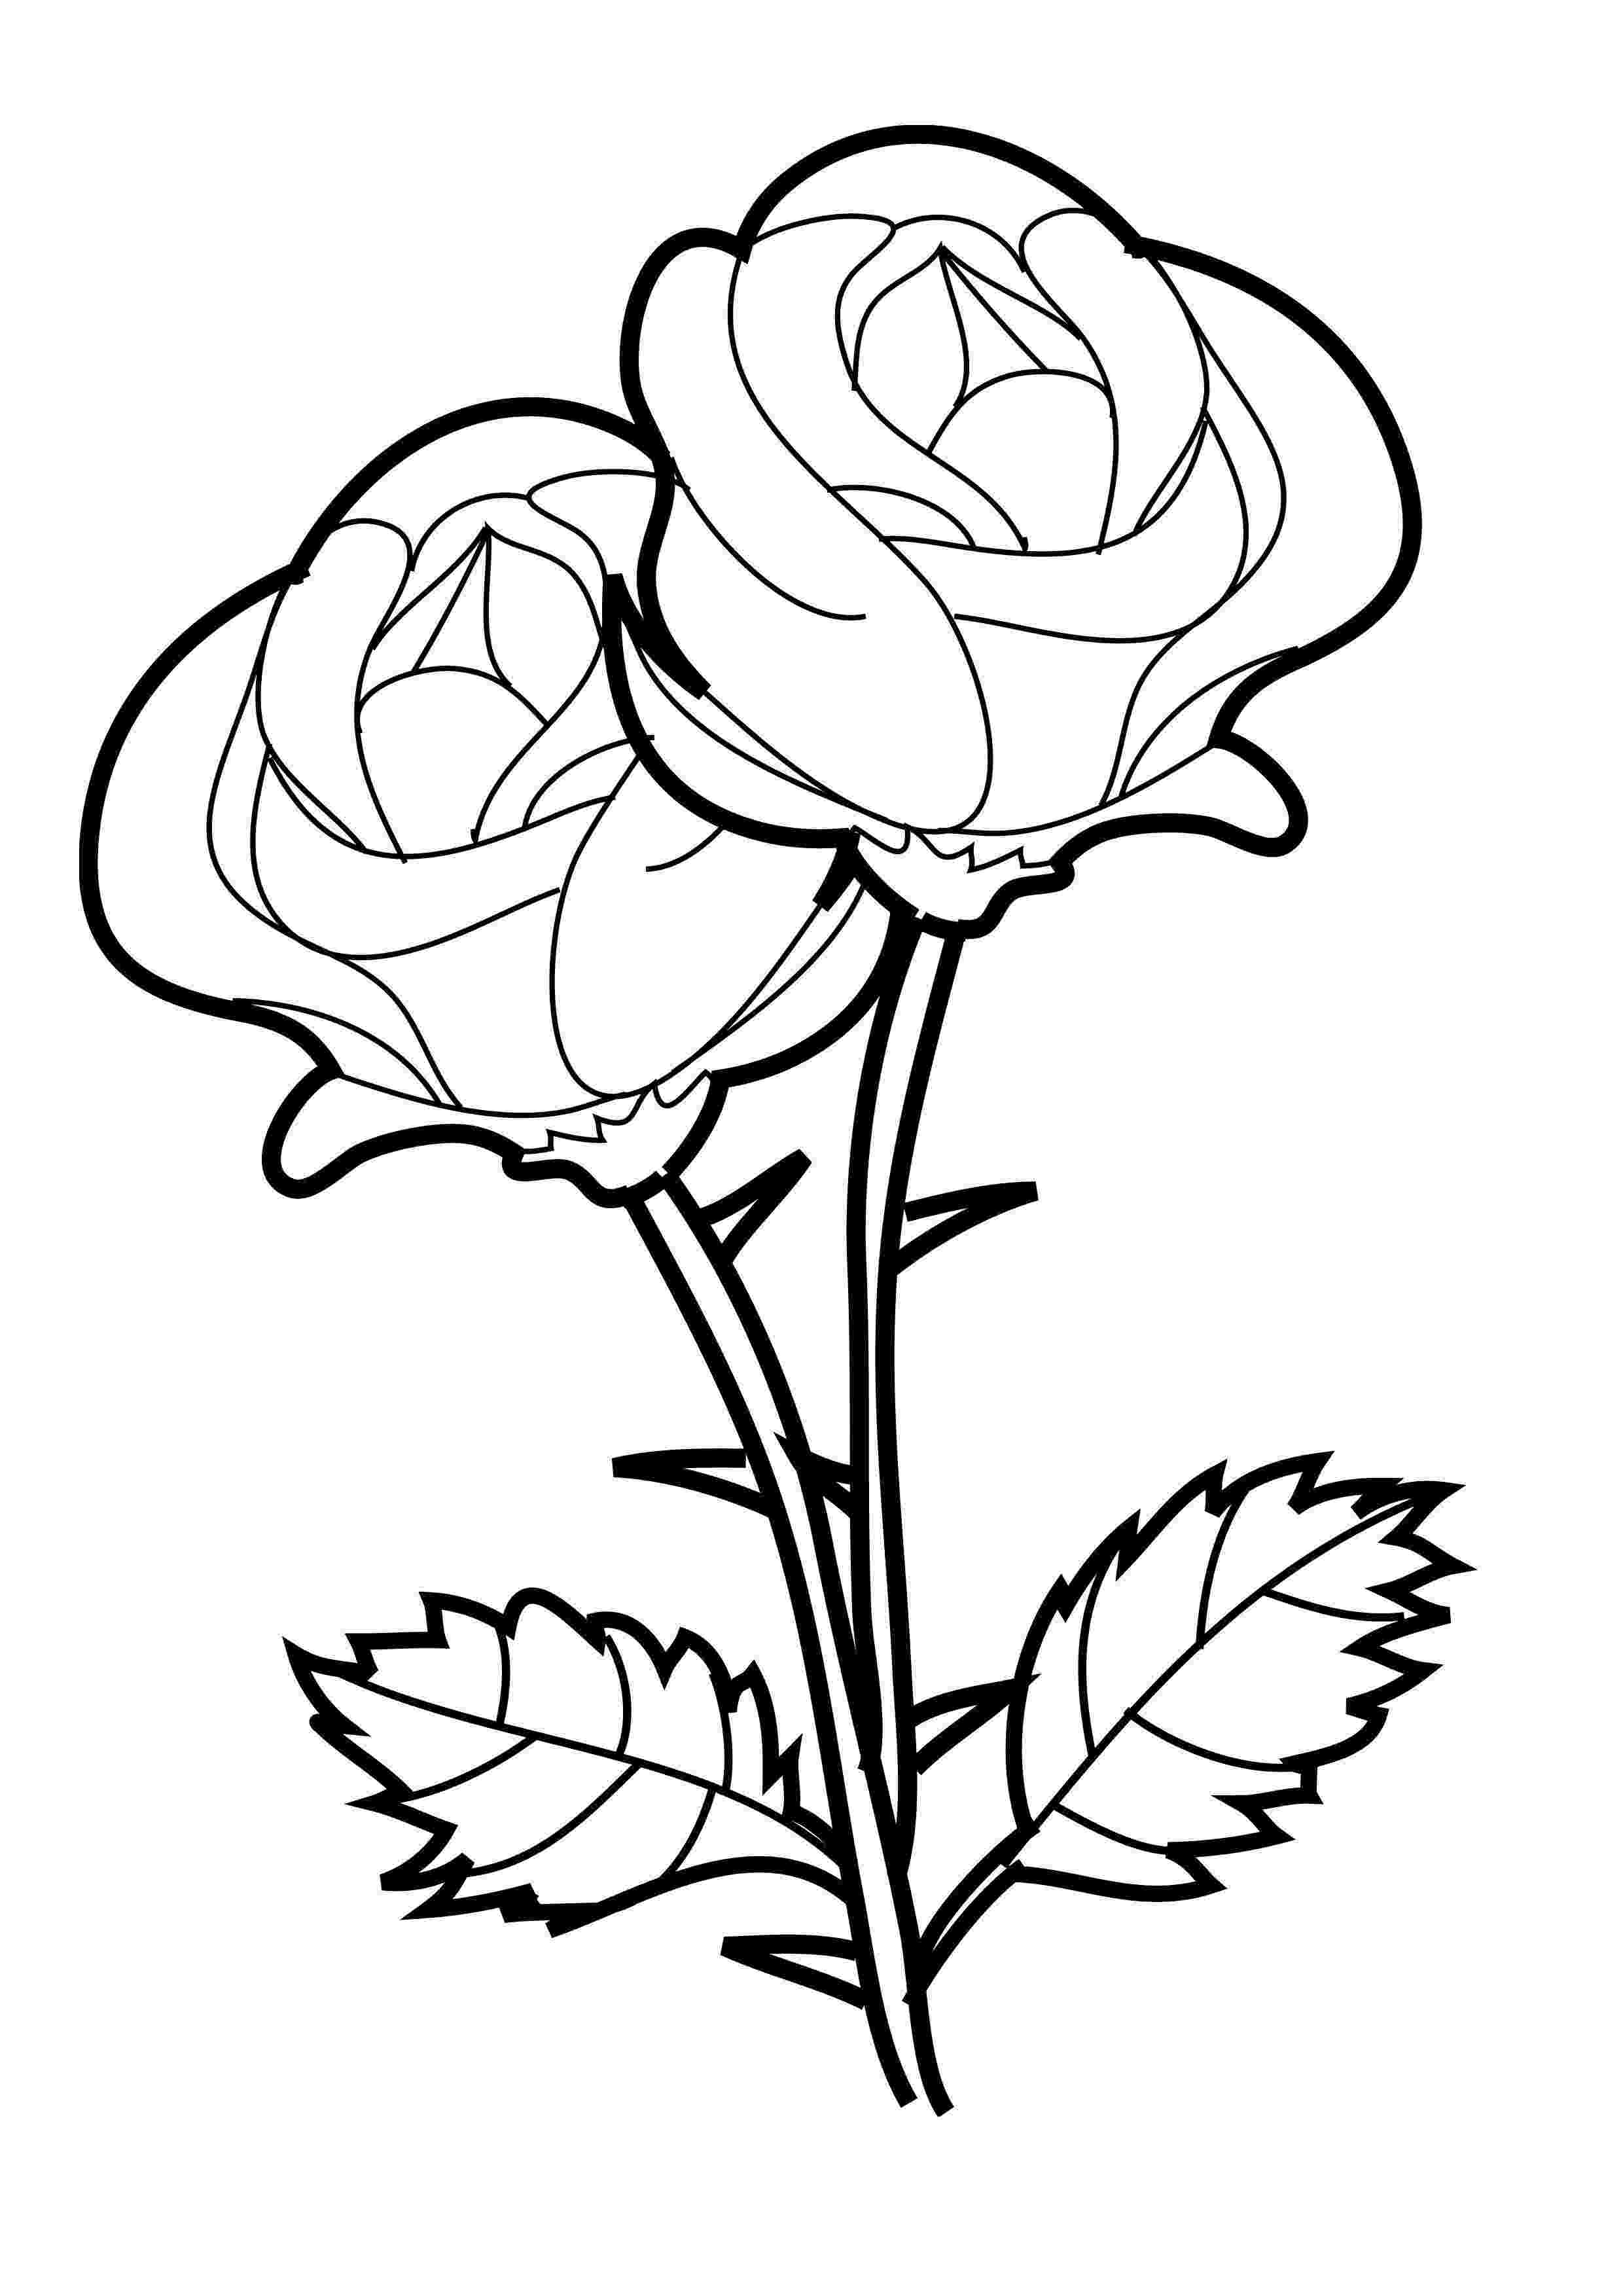 roses to color free printable roses coloring pages for kids to color roses